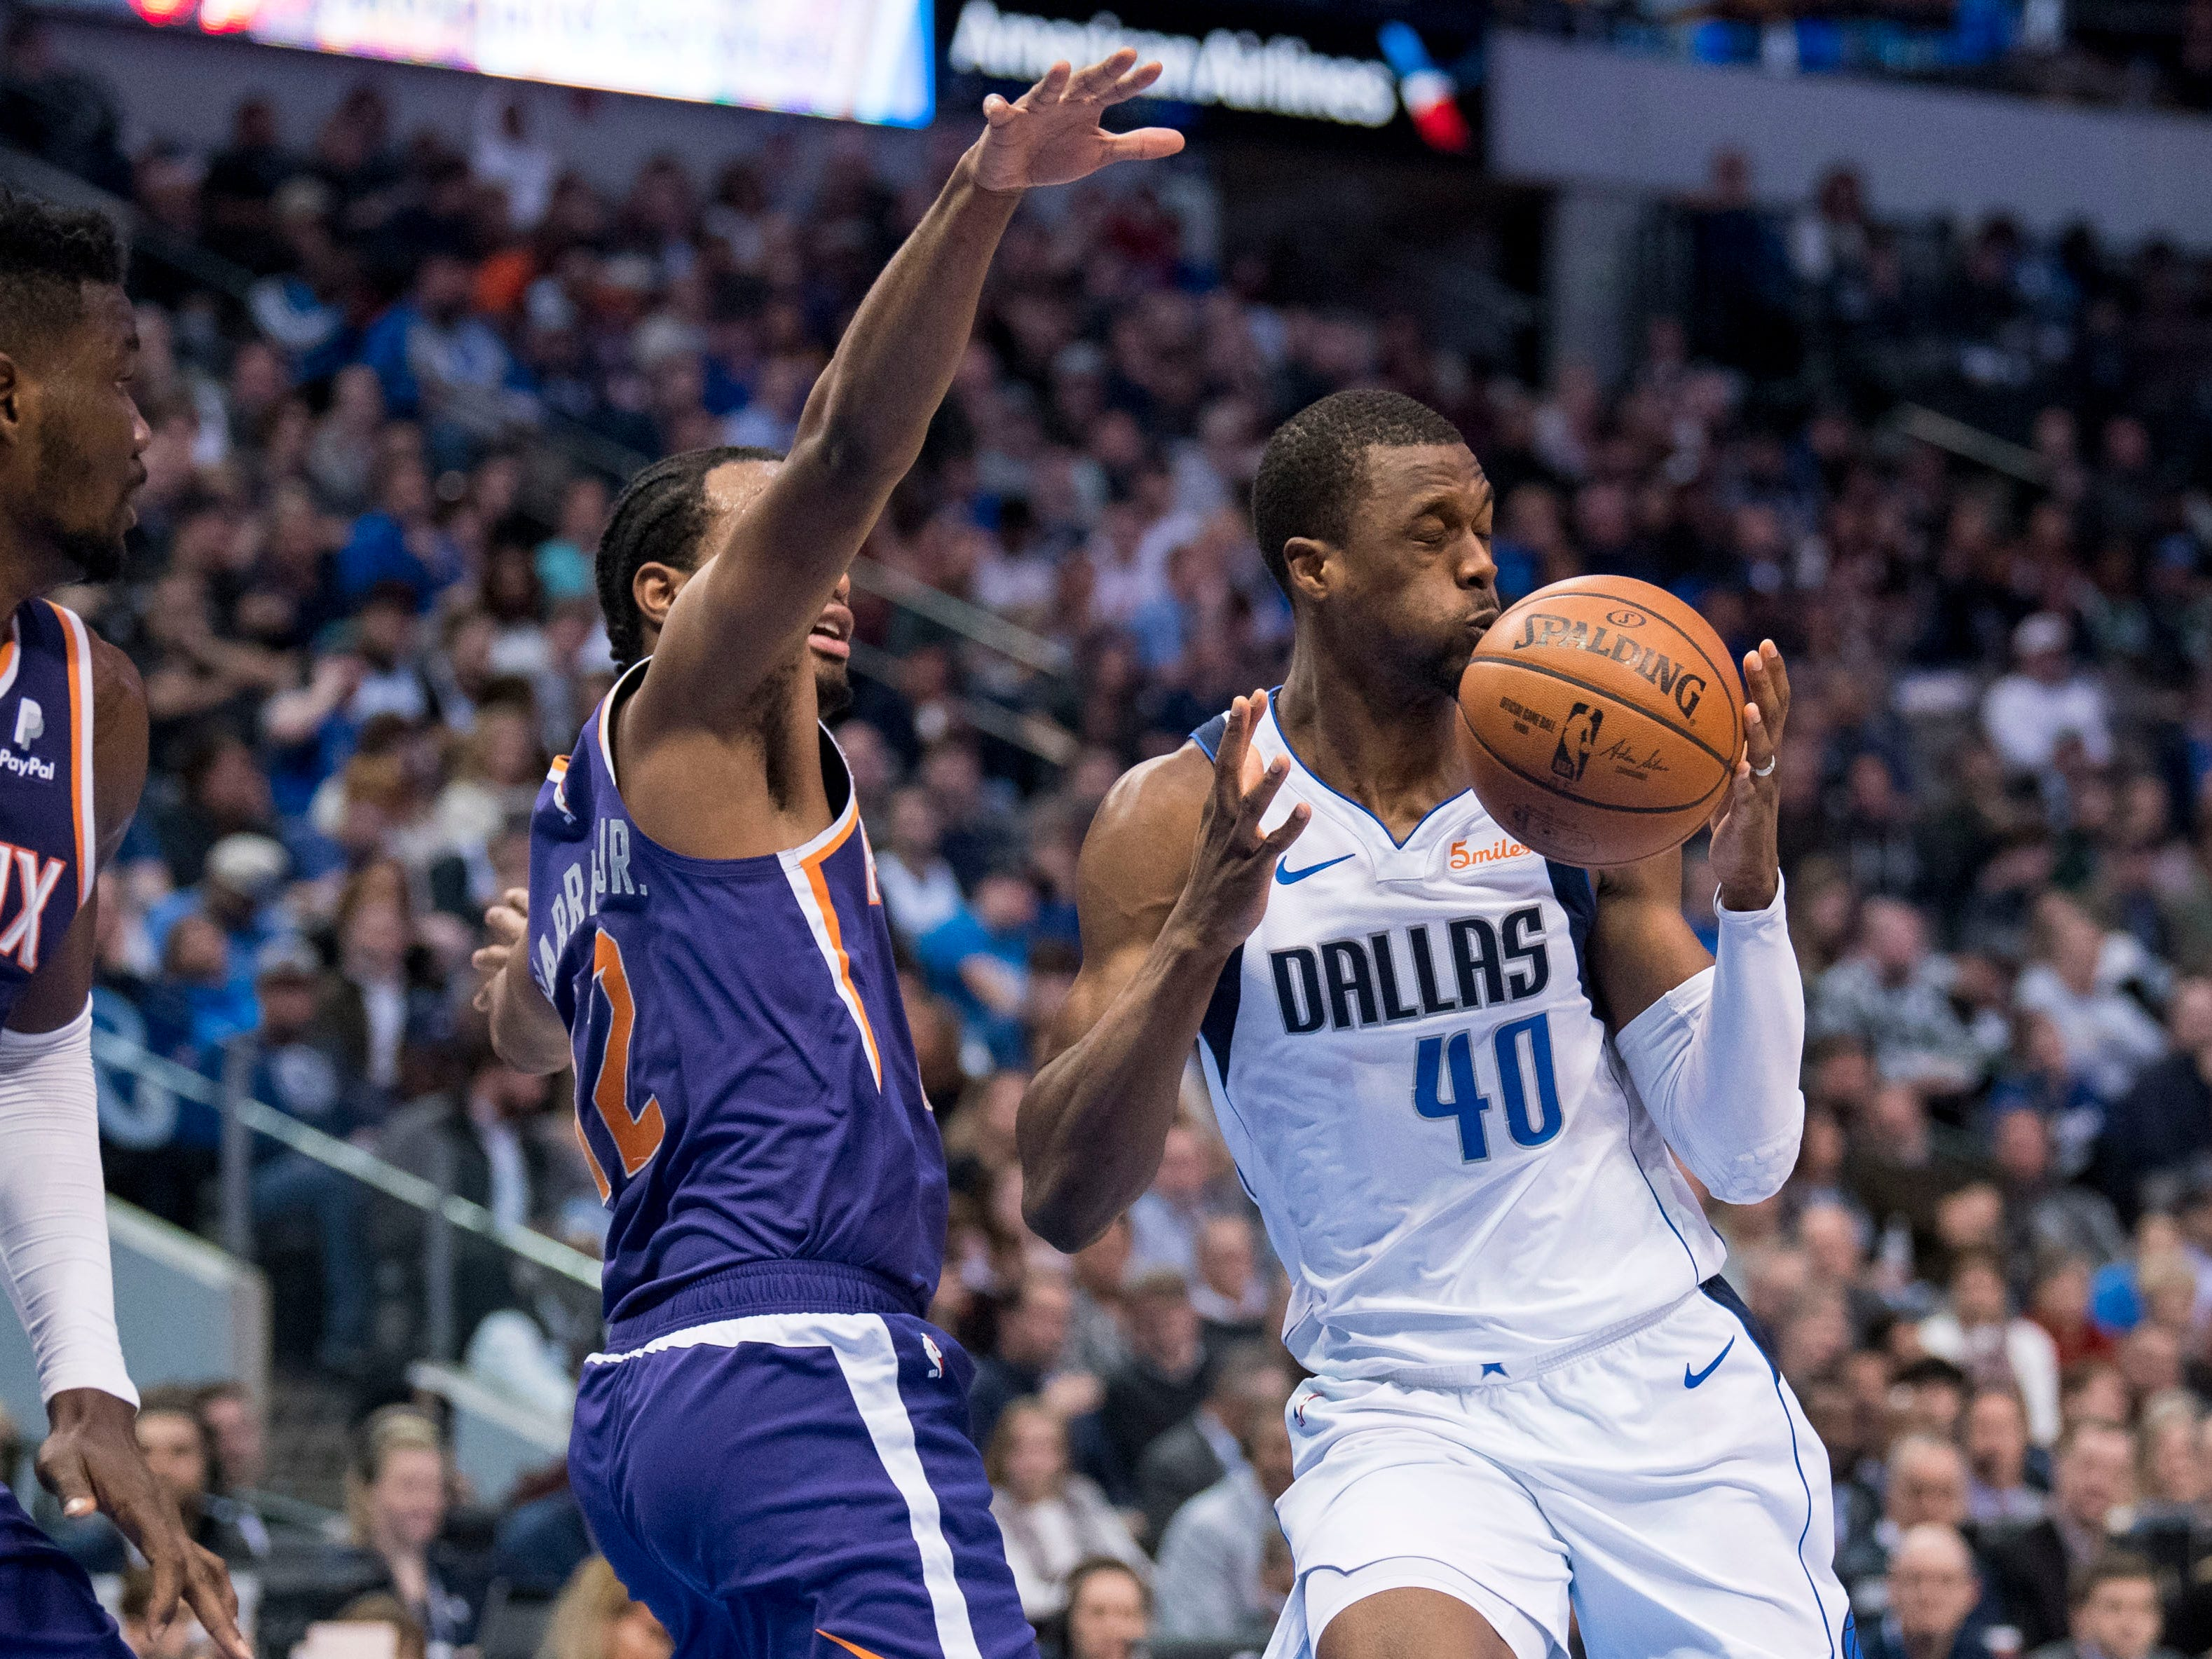 Jan 9, 2019; Dallas, TX, USA; Phoenix Suns forward T.J. Warren (12) defends against Dallas Mavericks forward Harrison Barnes (40) during the second quarter at the American Airlines Center. Mandatory Credit: Jerome Miron-USA TODAY Sports